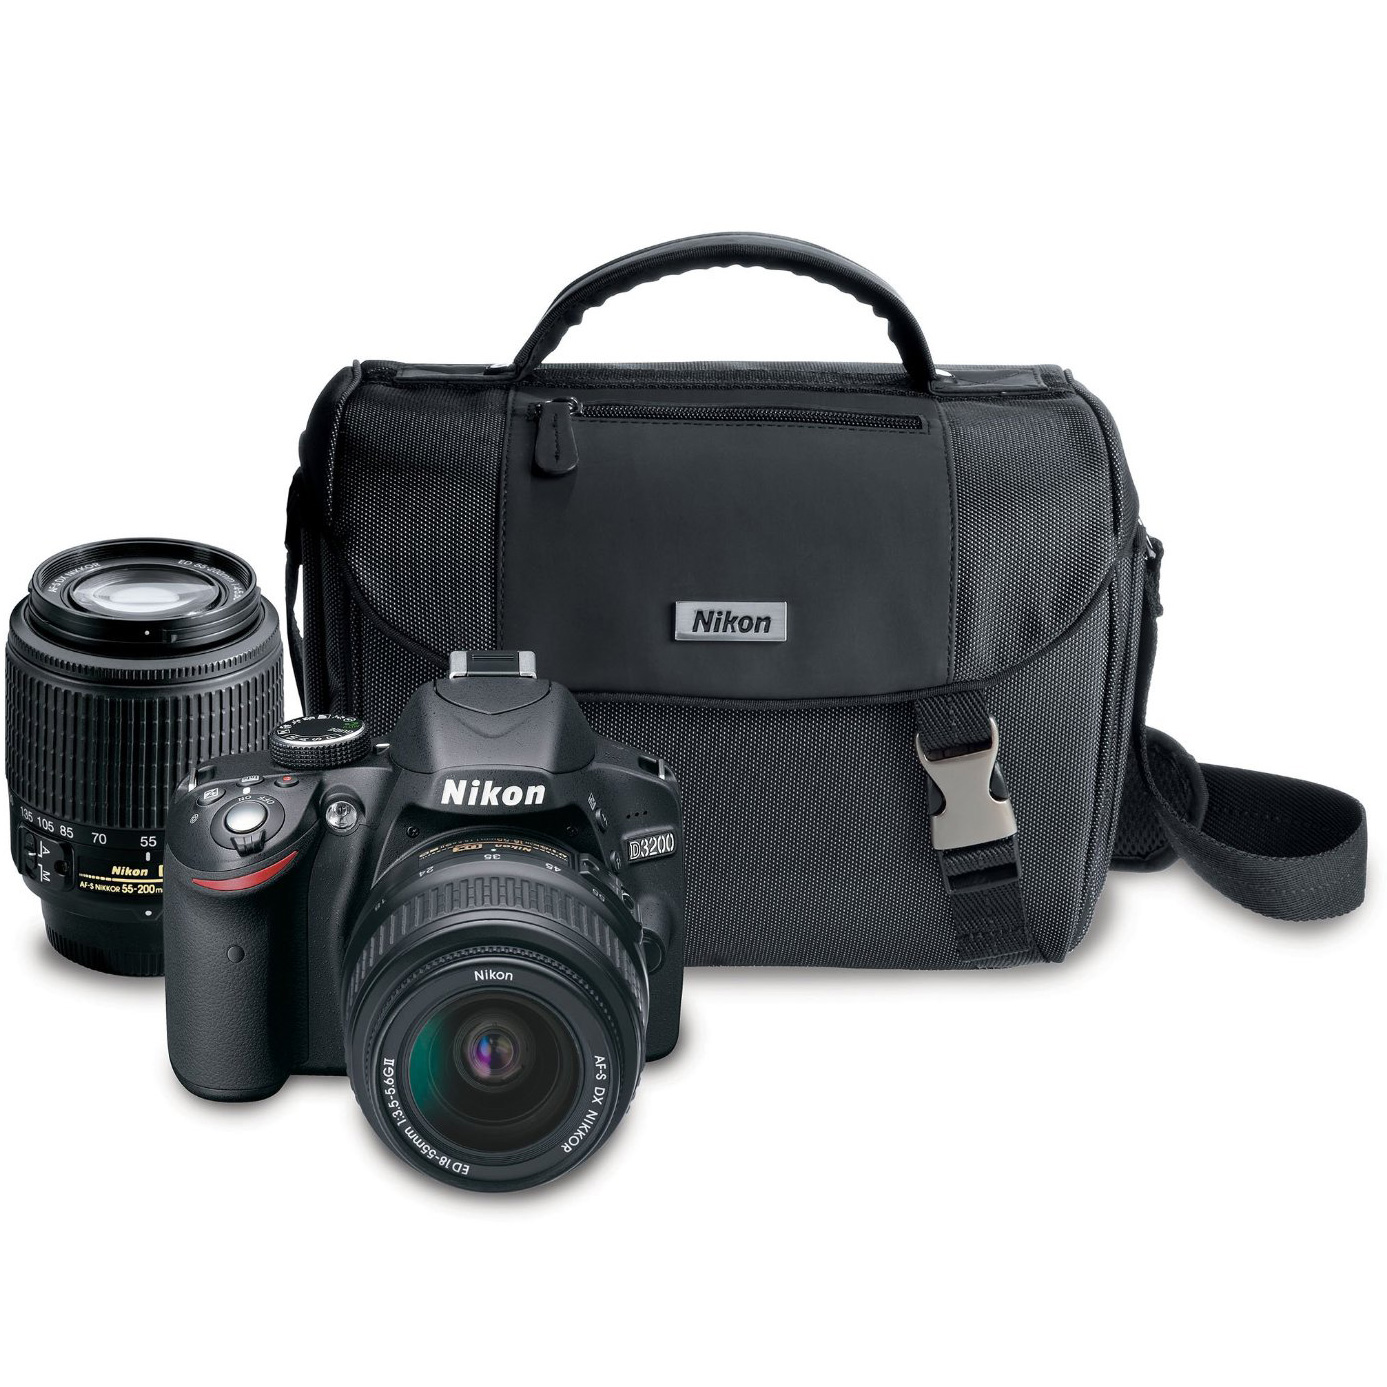 Nikon Black D3200 Digital SLR Camera with 24.2 Megapixels, Includes 18-55mm and 55-200mm Lenses, PLUS Carrying Case